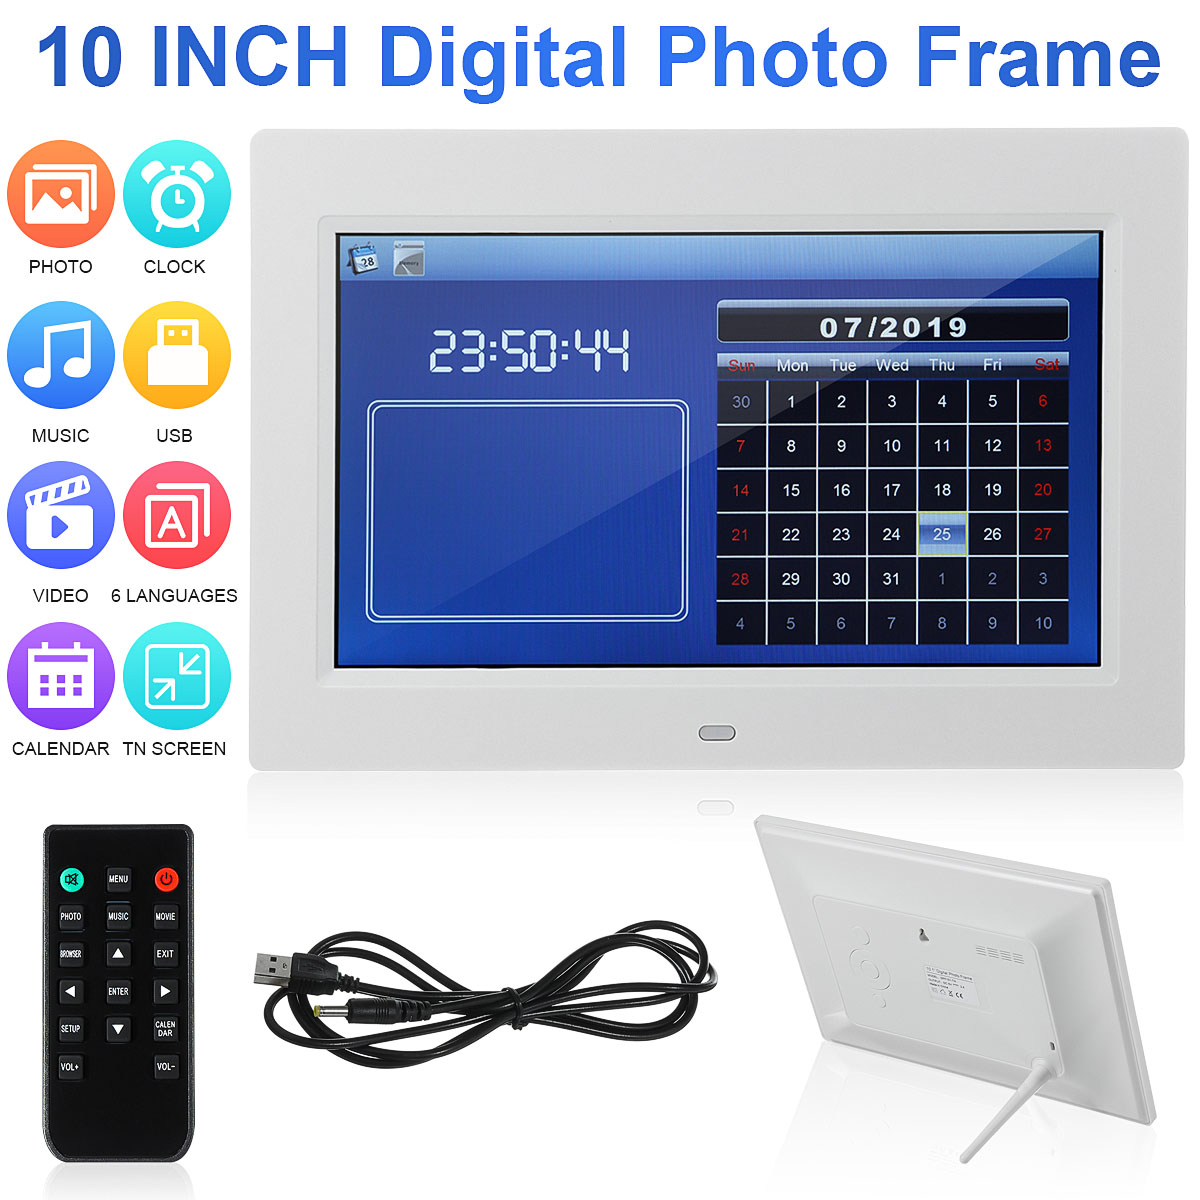 HD 1080P 10 inch Digital Photo Frame Screen LED Backlight Digital Photo Frame Electronic Album Picture Music Movie Full Function image